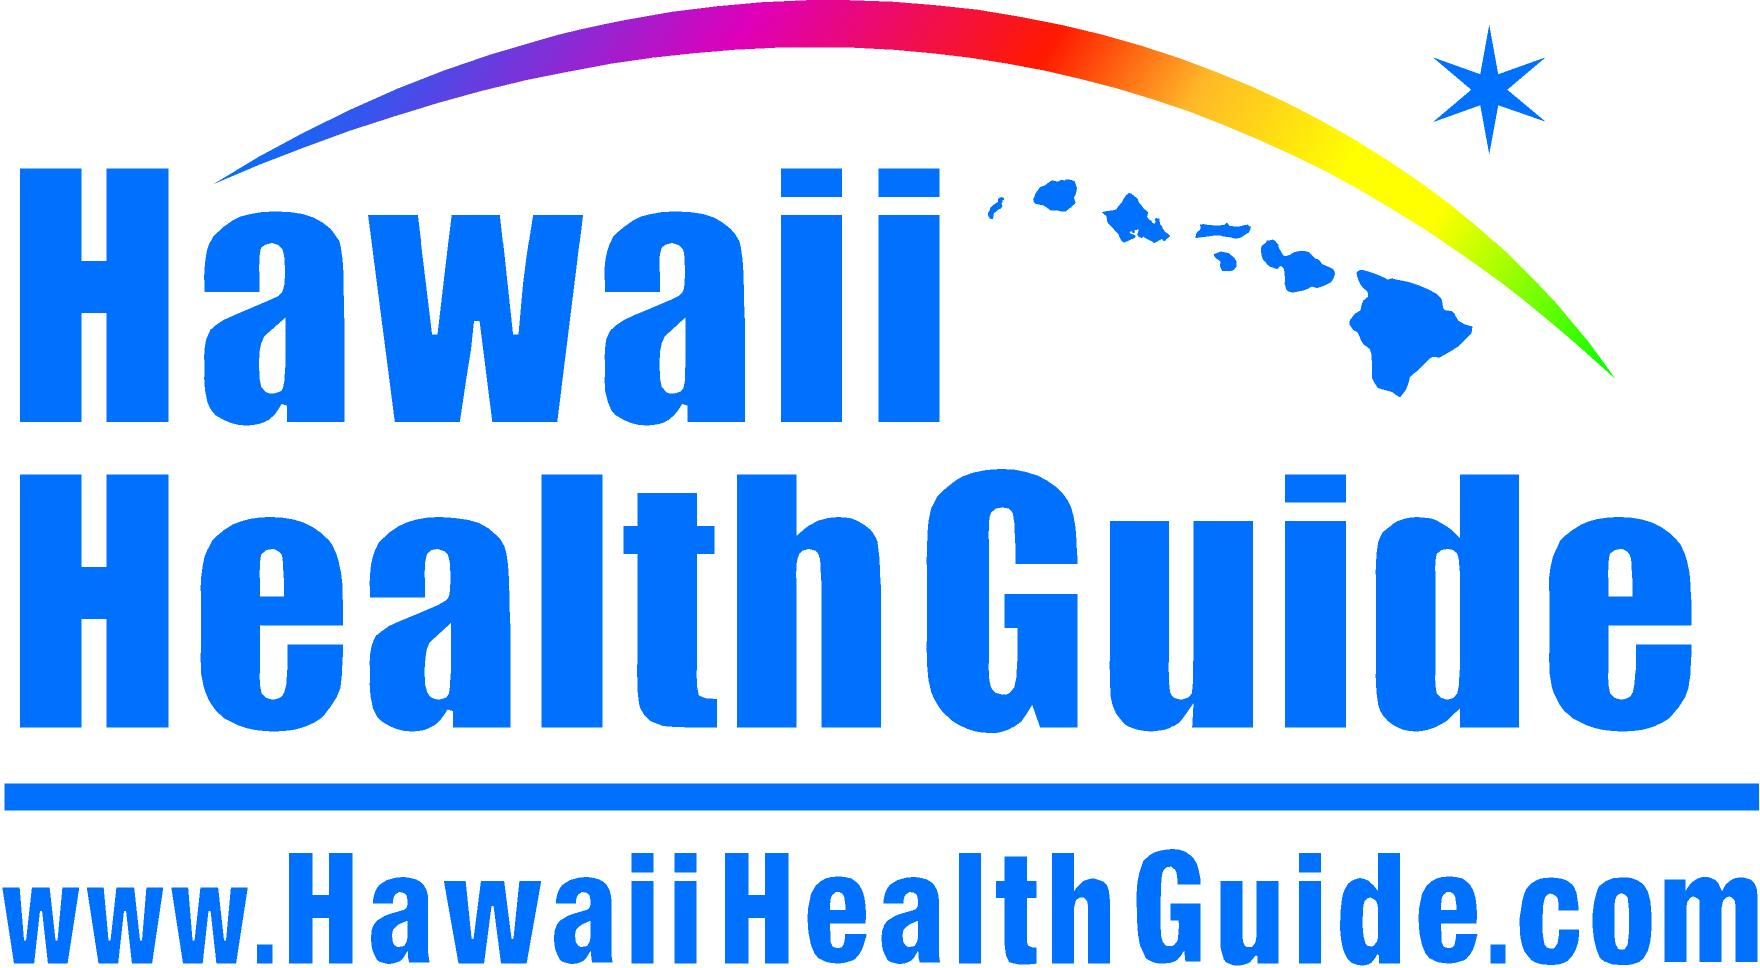 Hawaii Health Guide www.HawaiiHealthGuide.com